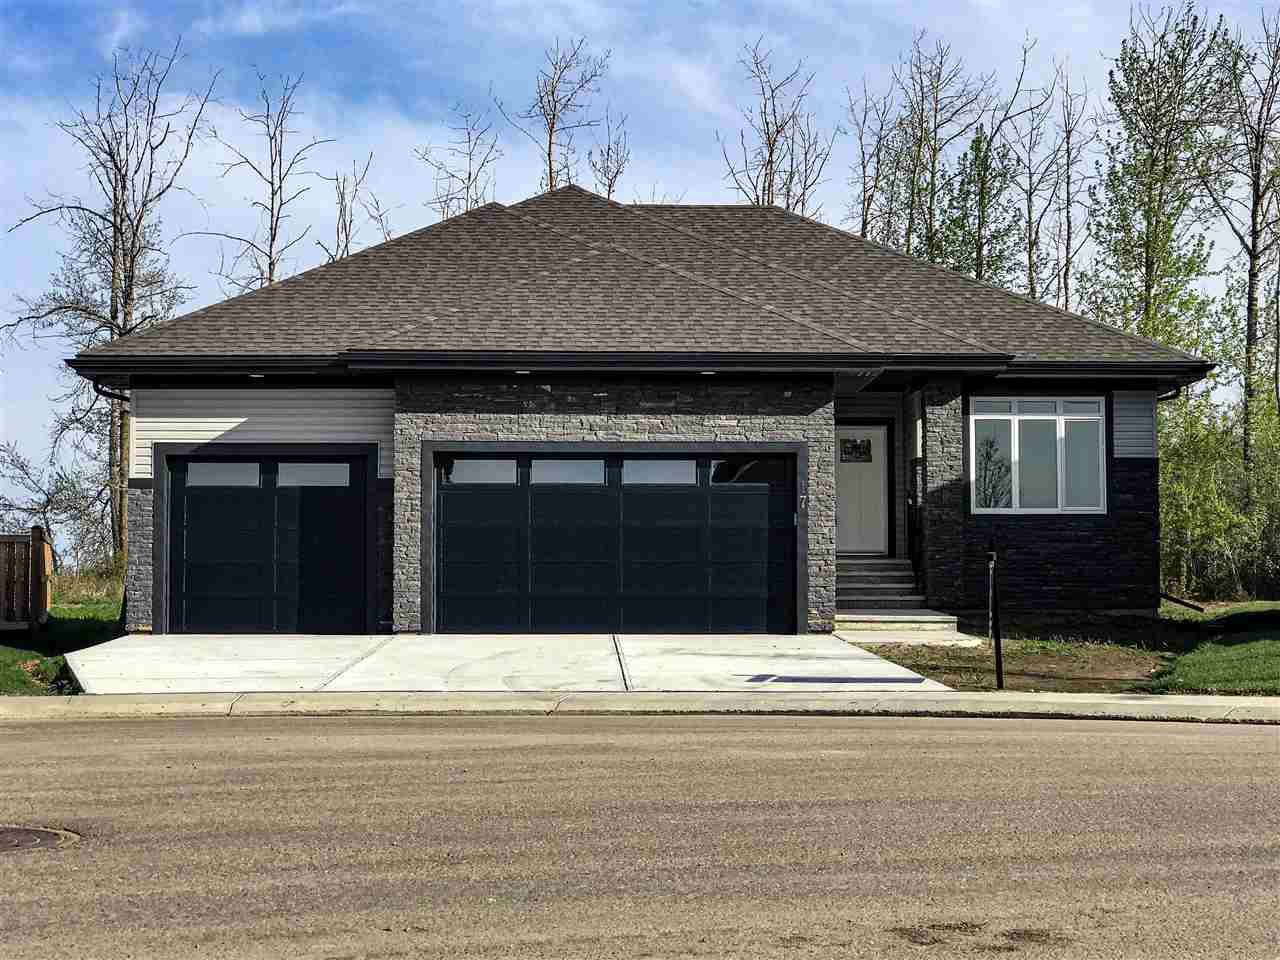 Main Photo: 17 DILLWORTH Crescent: Spruce Grove House for sale : MLS®# E4151923